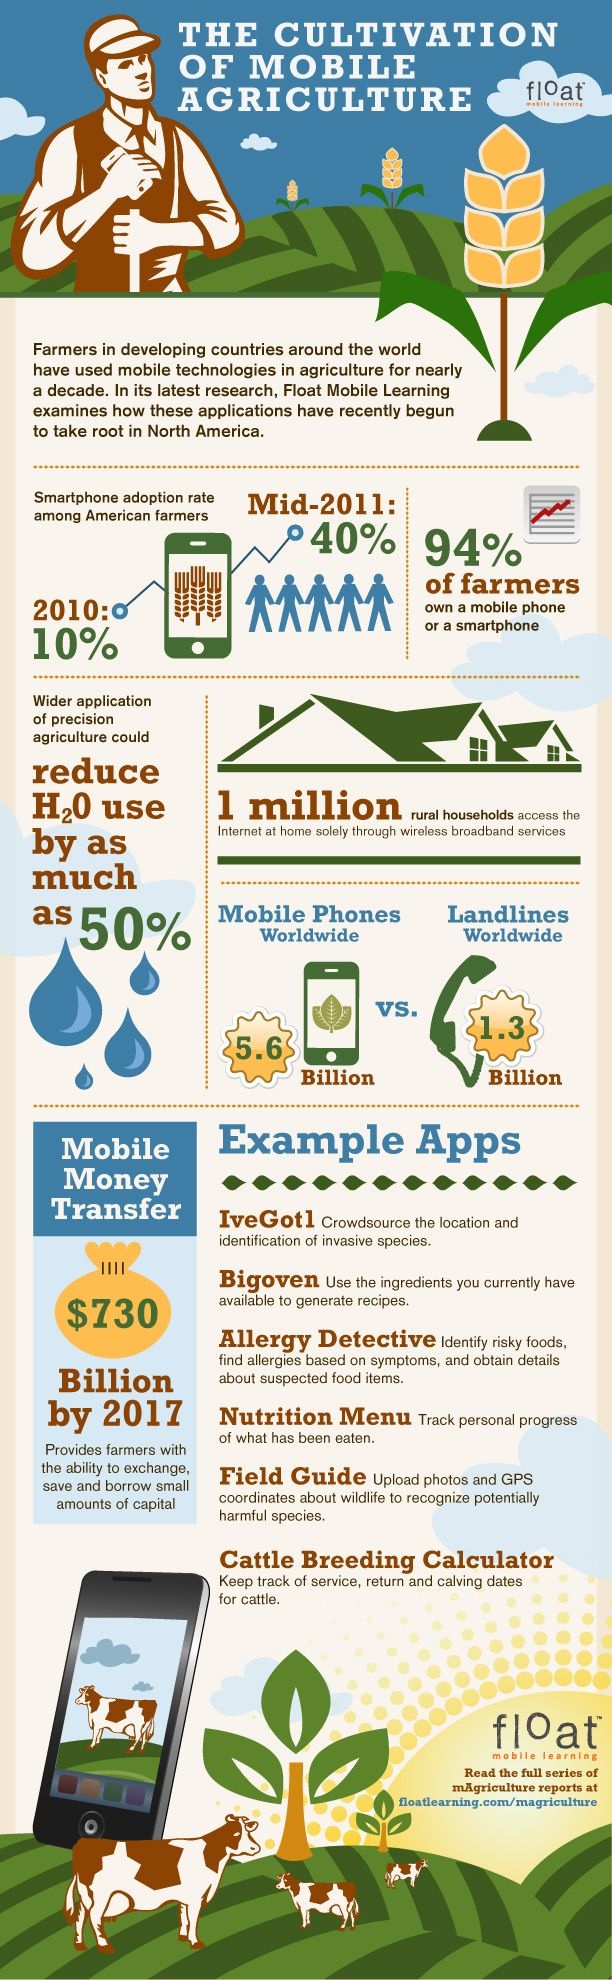 Agriculture Trends - Adoption of Mobile Devices and Their Use